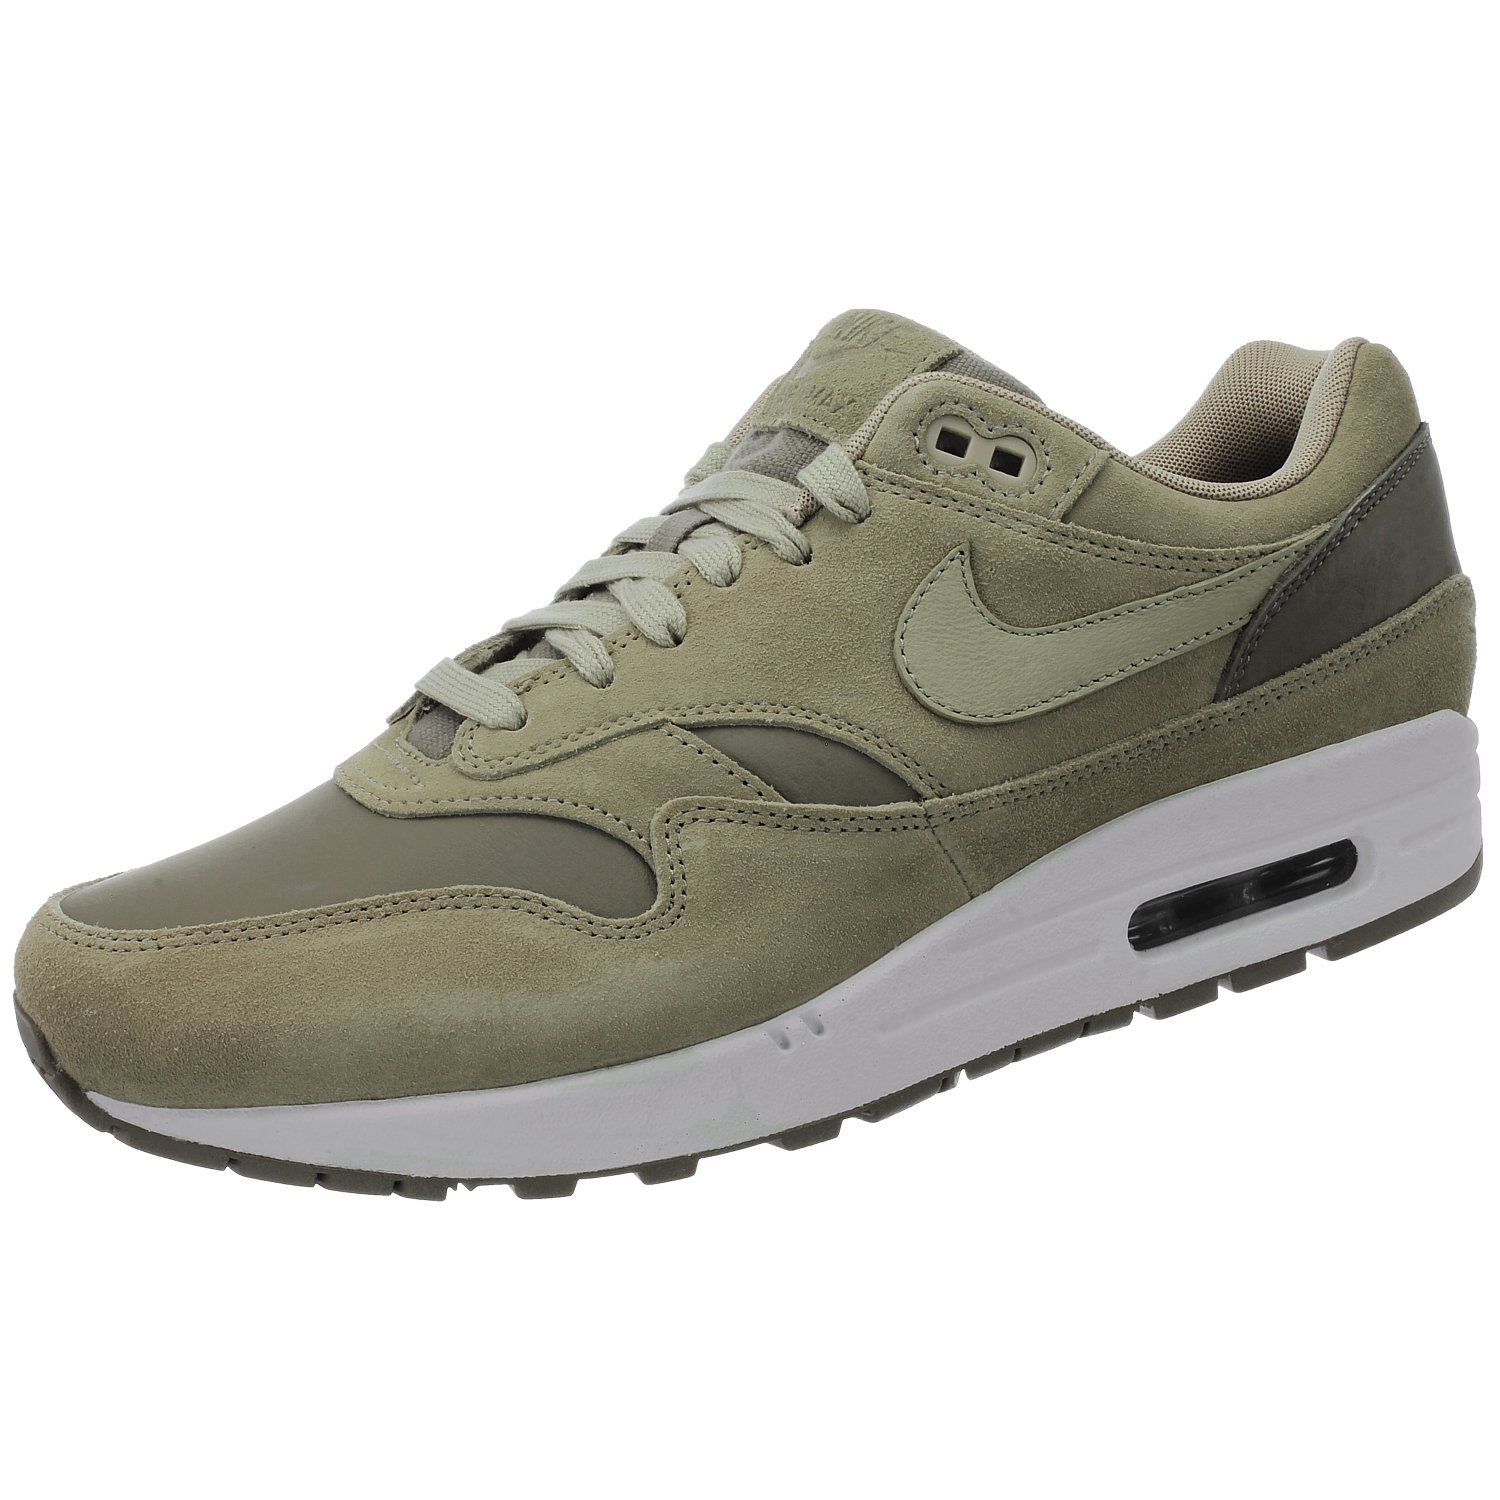 Nike Air Max 1 Premium Leather AH9902 201 Herren Sneakers/Freizeitschuhe/Low-Top Sneakers Beige  40 EU|Beige